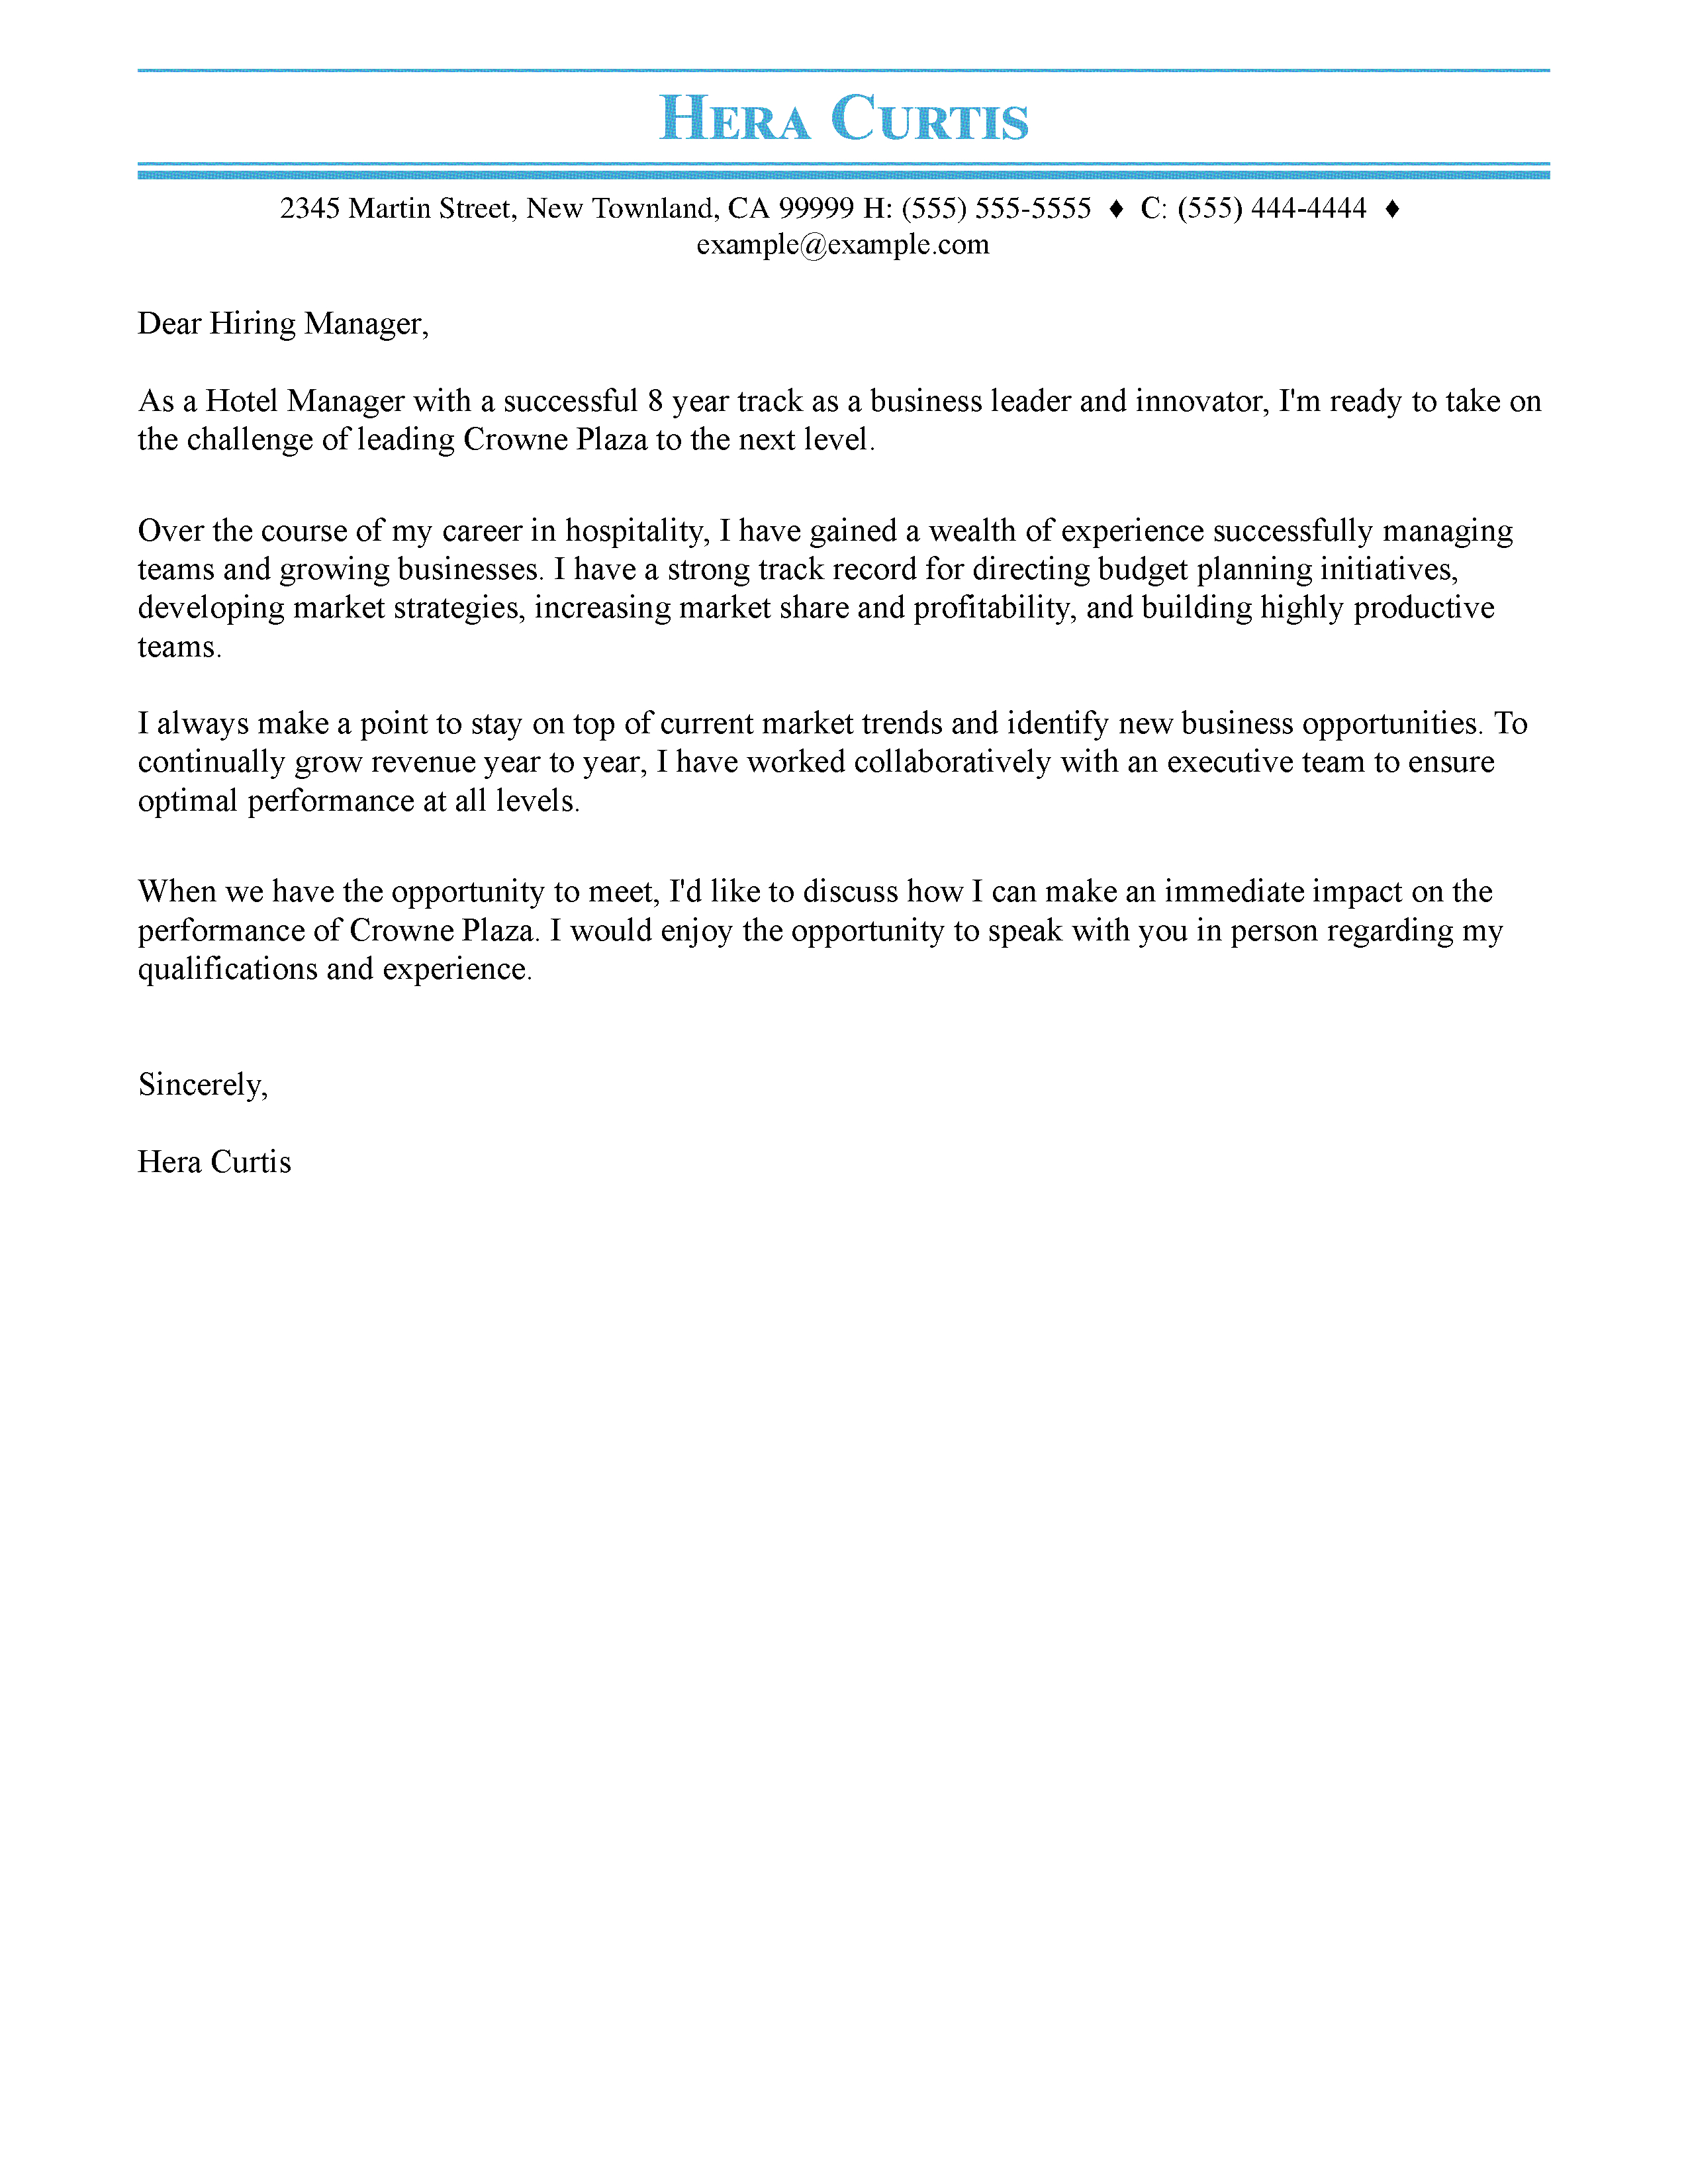 Cover Letter Examples – Write The Perfect Cover Letter For Request Letter For Internet Connection Template